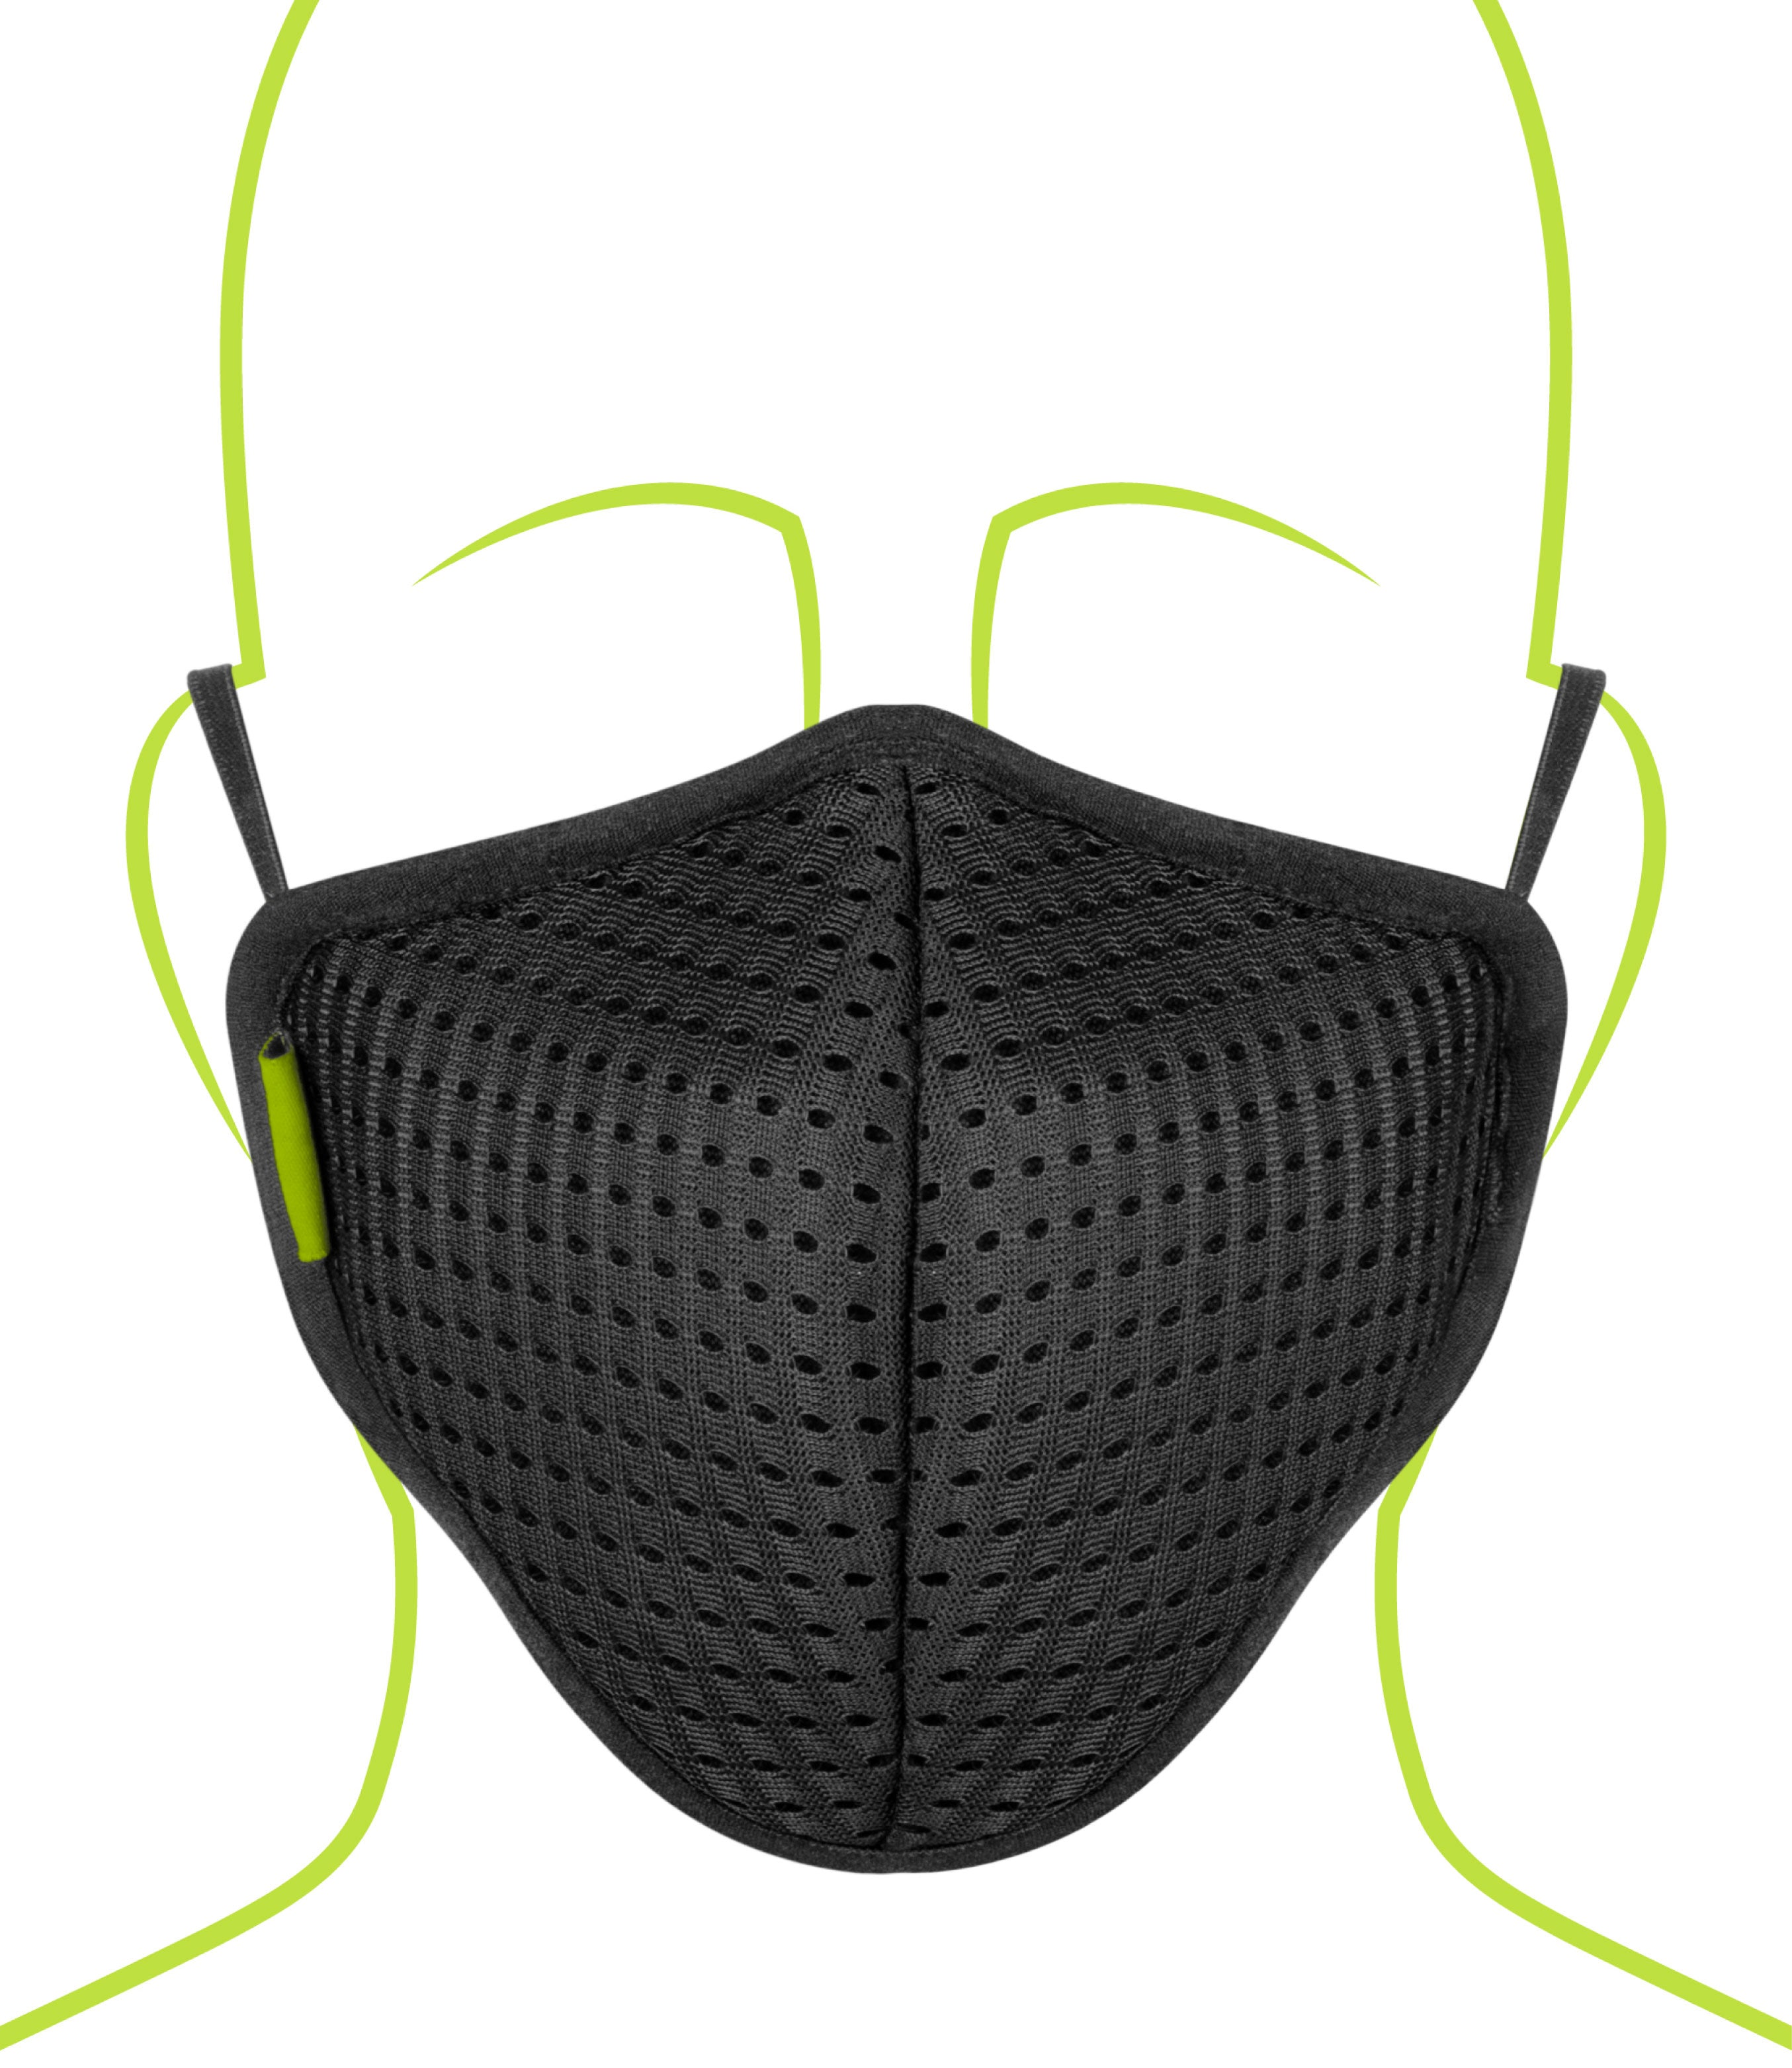 Defender Pro R95 Mask - Pack of 3